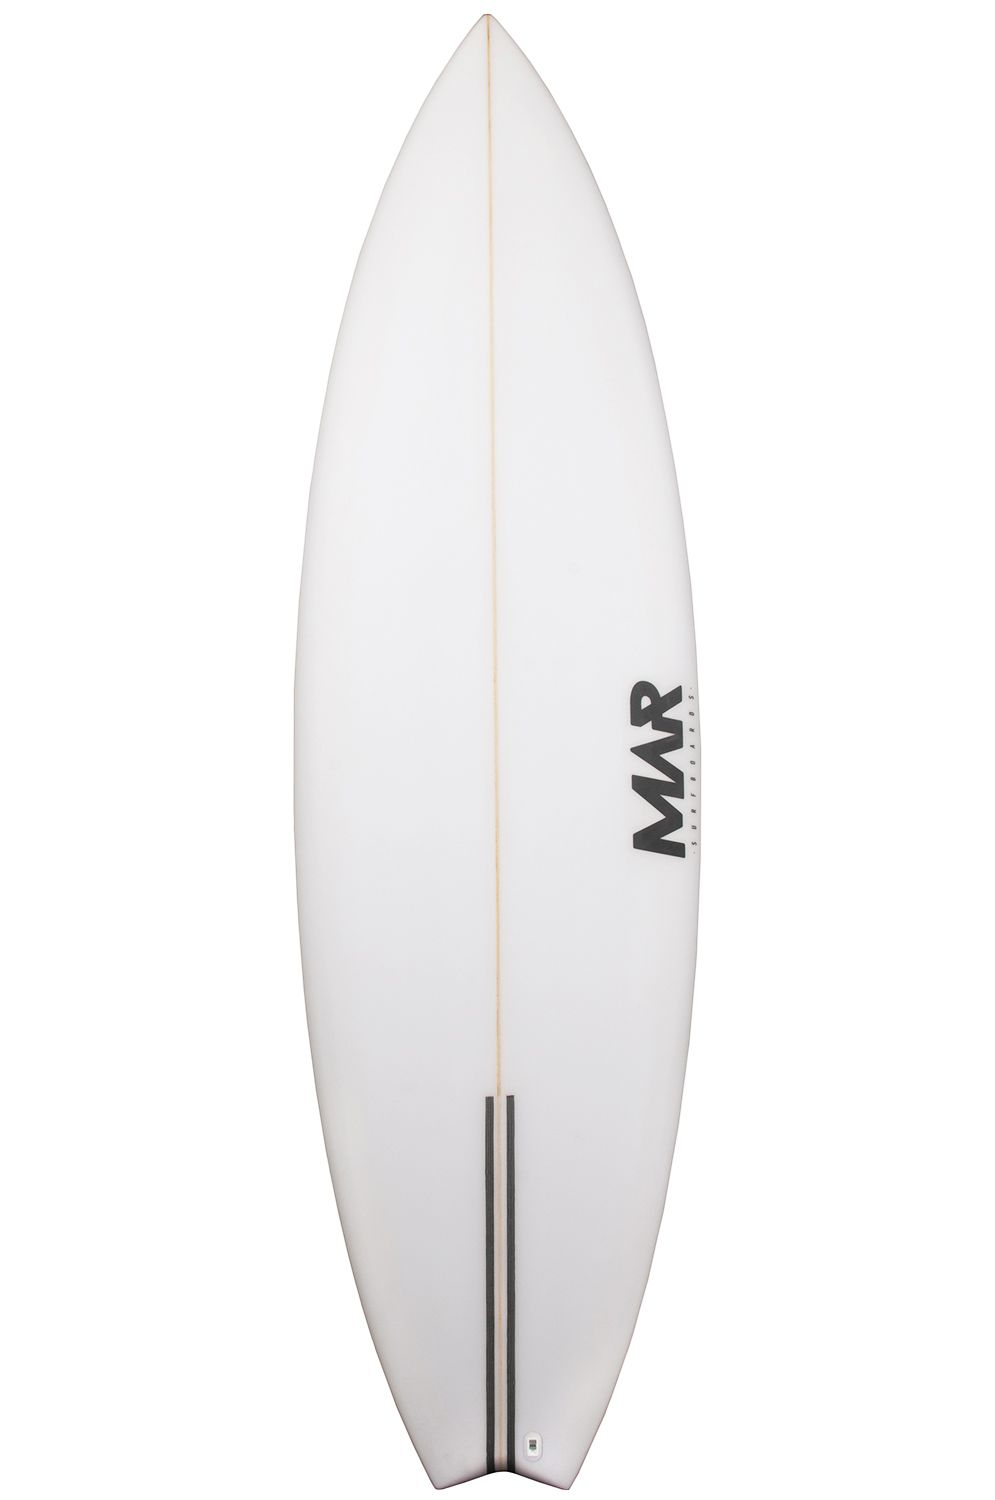 Mar Surf Board 6'0 PARROT PU Swallow Tail - White FCS II 6ft0